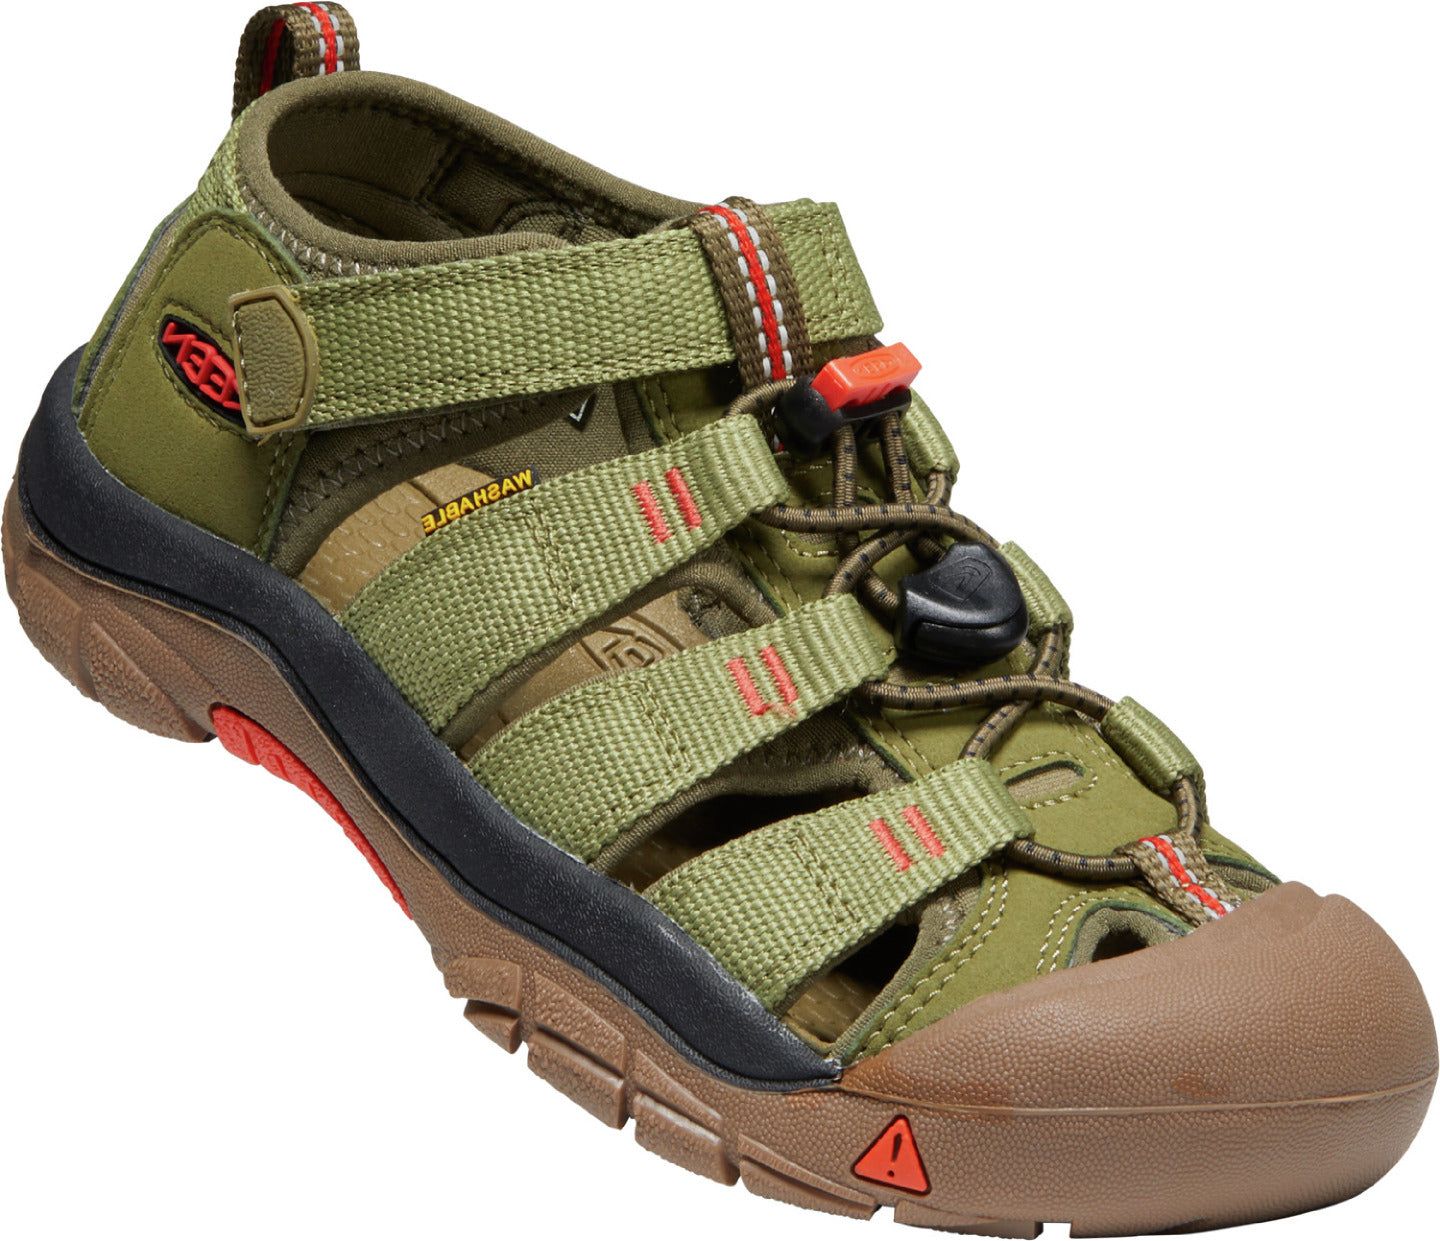 Youth KEEN Newport H2 Sandal in Olive Drab/Orange from the side